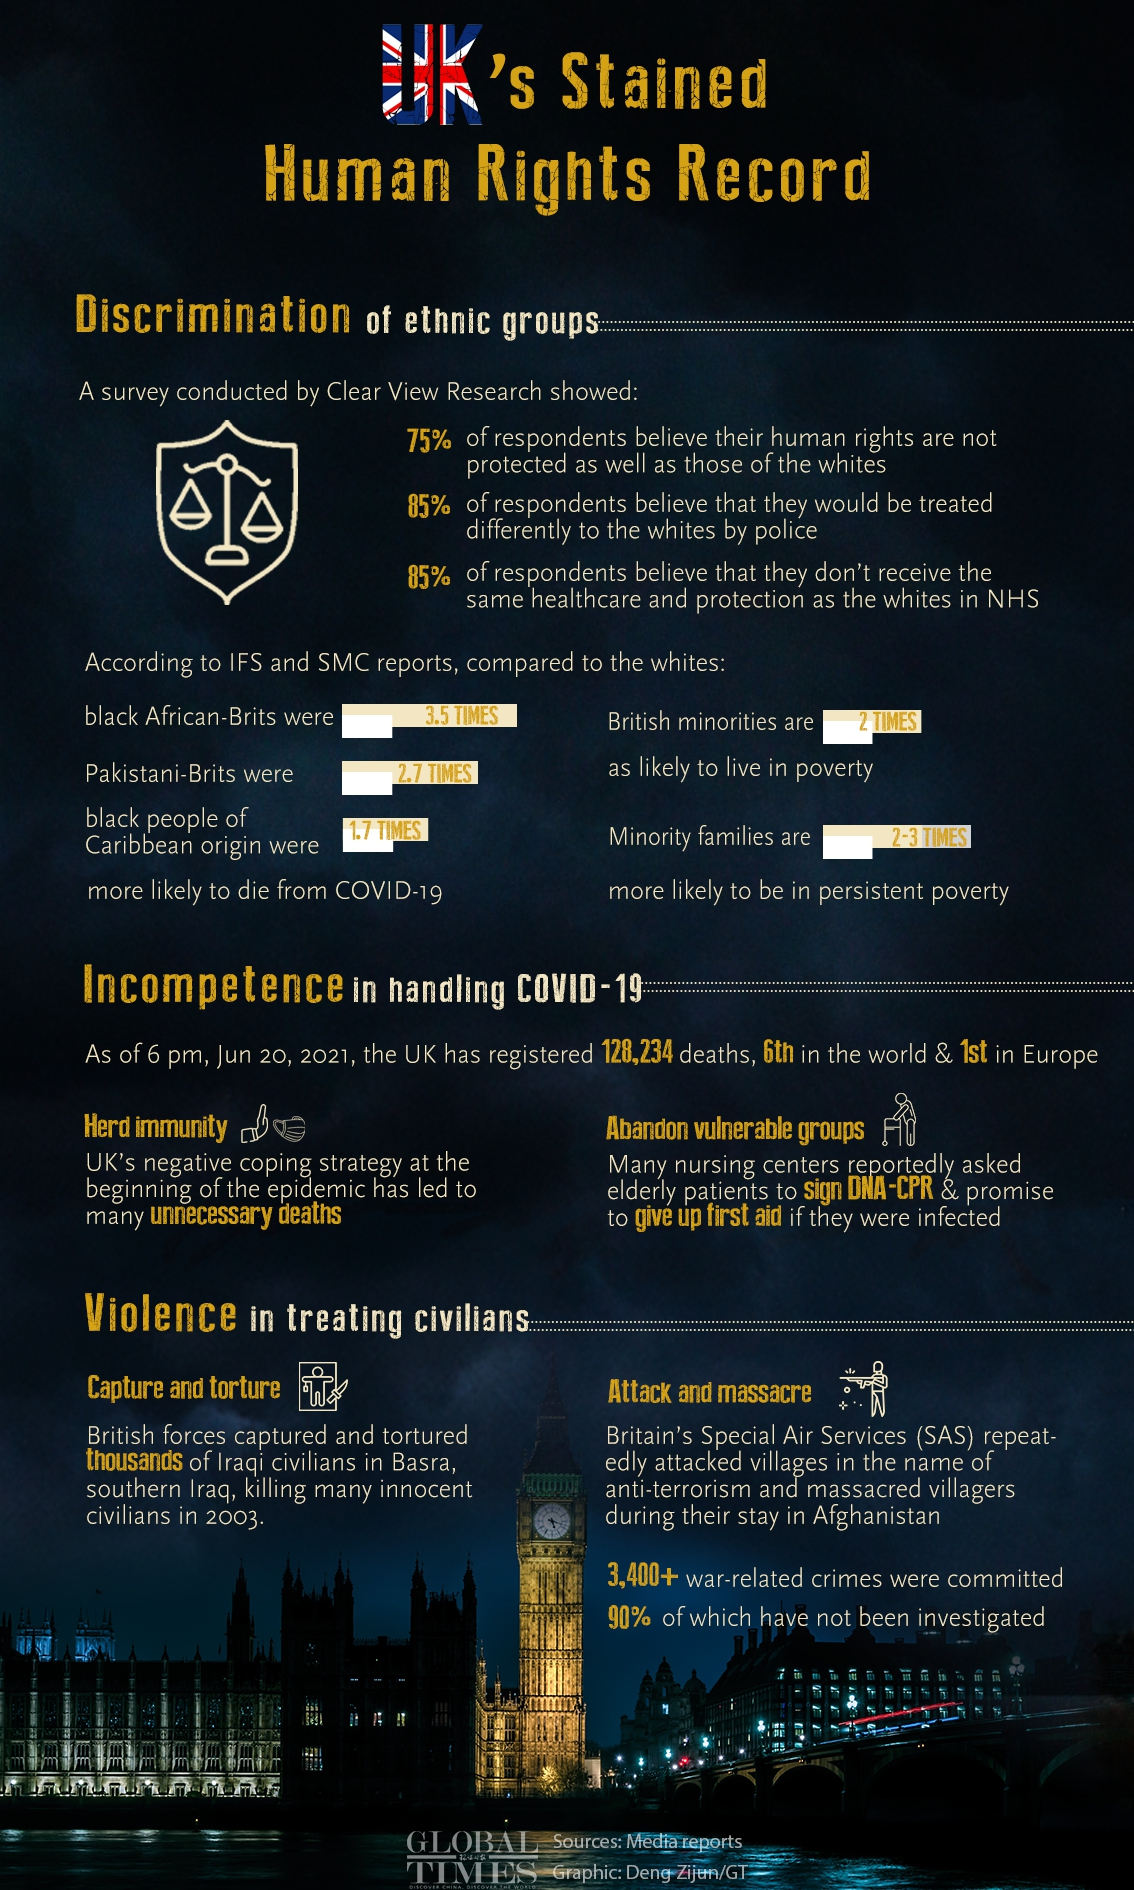 UK's Stained Human Rights Record Graphic: Deng Zijun/GT